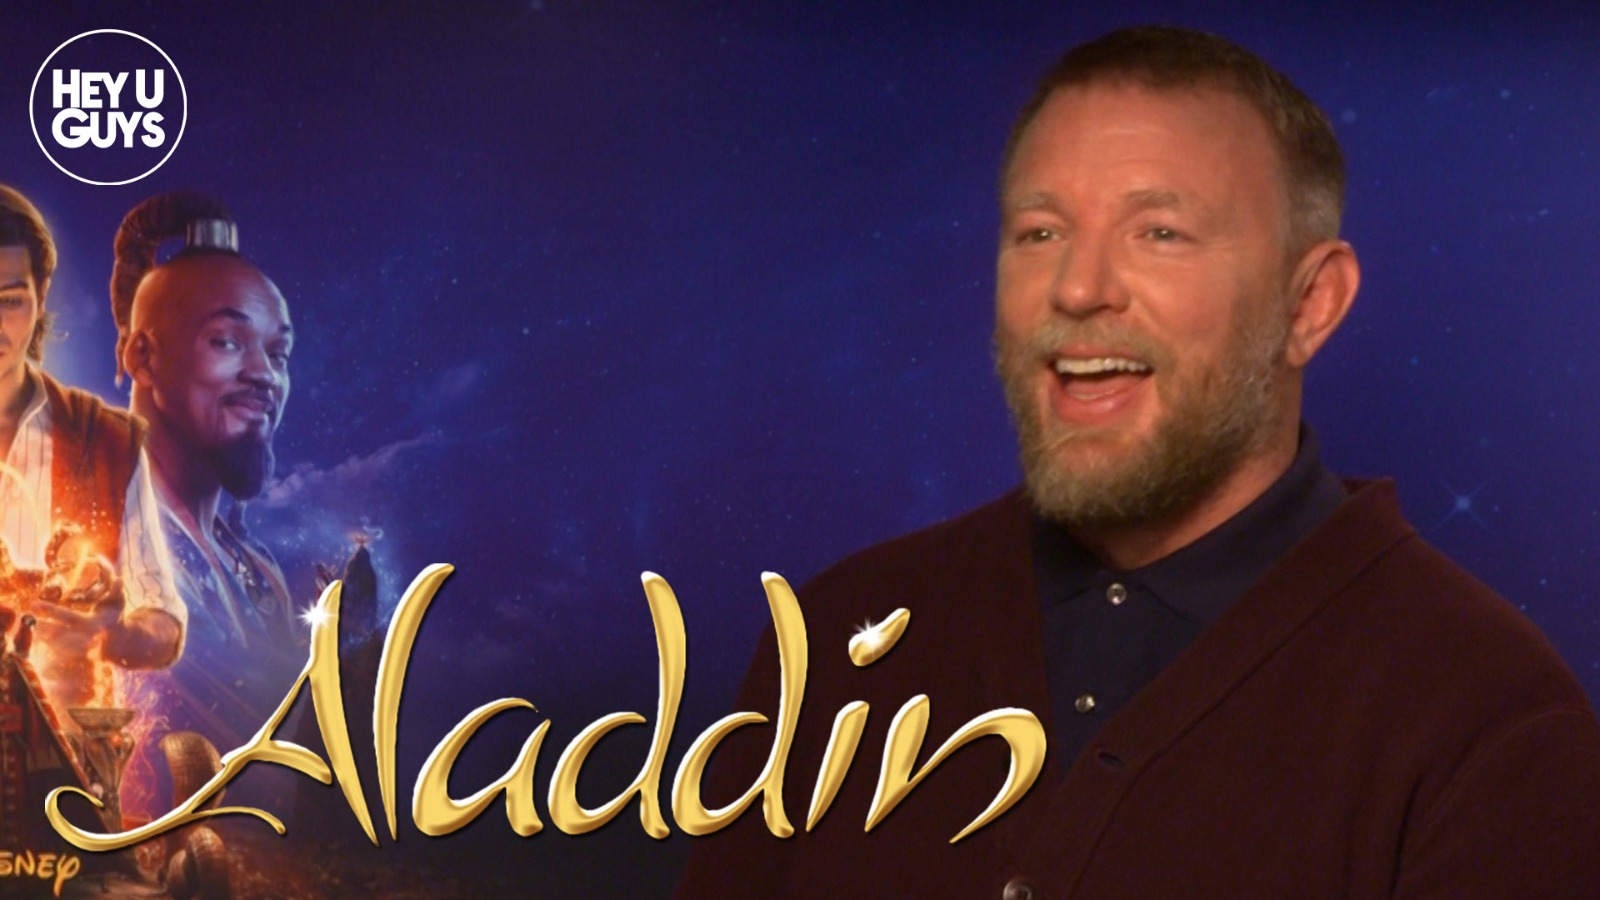 Guy Ritchie - Aladdin Interview